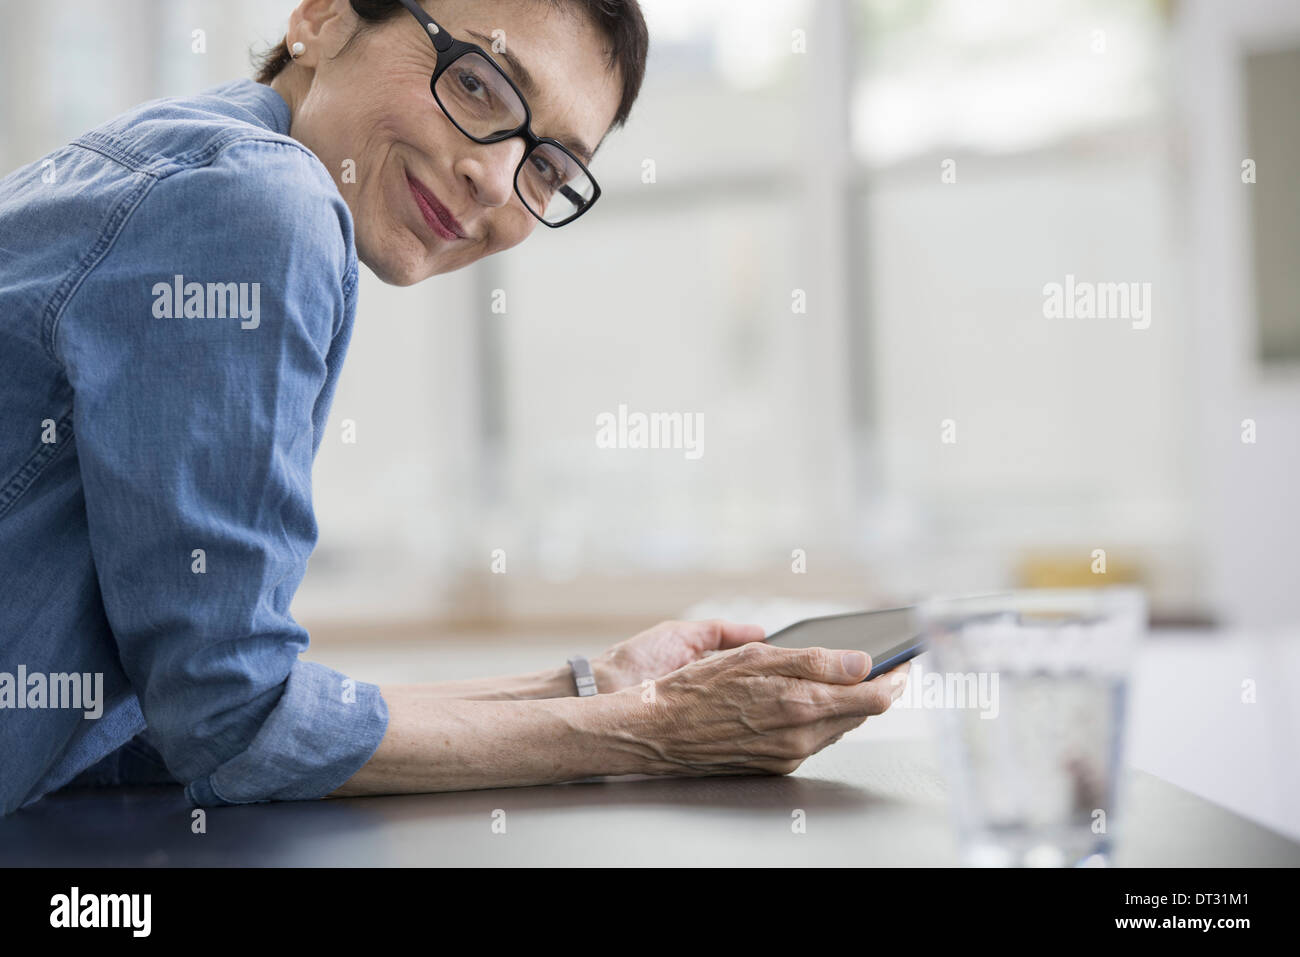 Professionals in the office A light and airy place of work A mature woman in a blue denim shirt holding a digital tablet - Stock Image